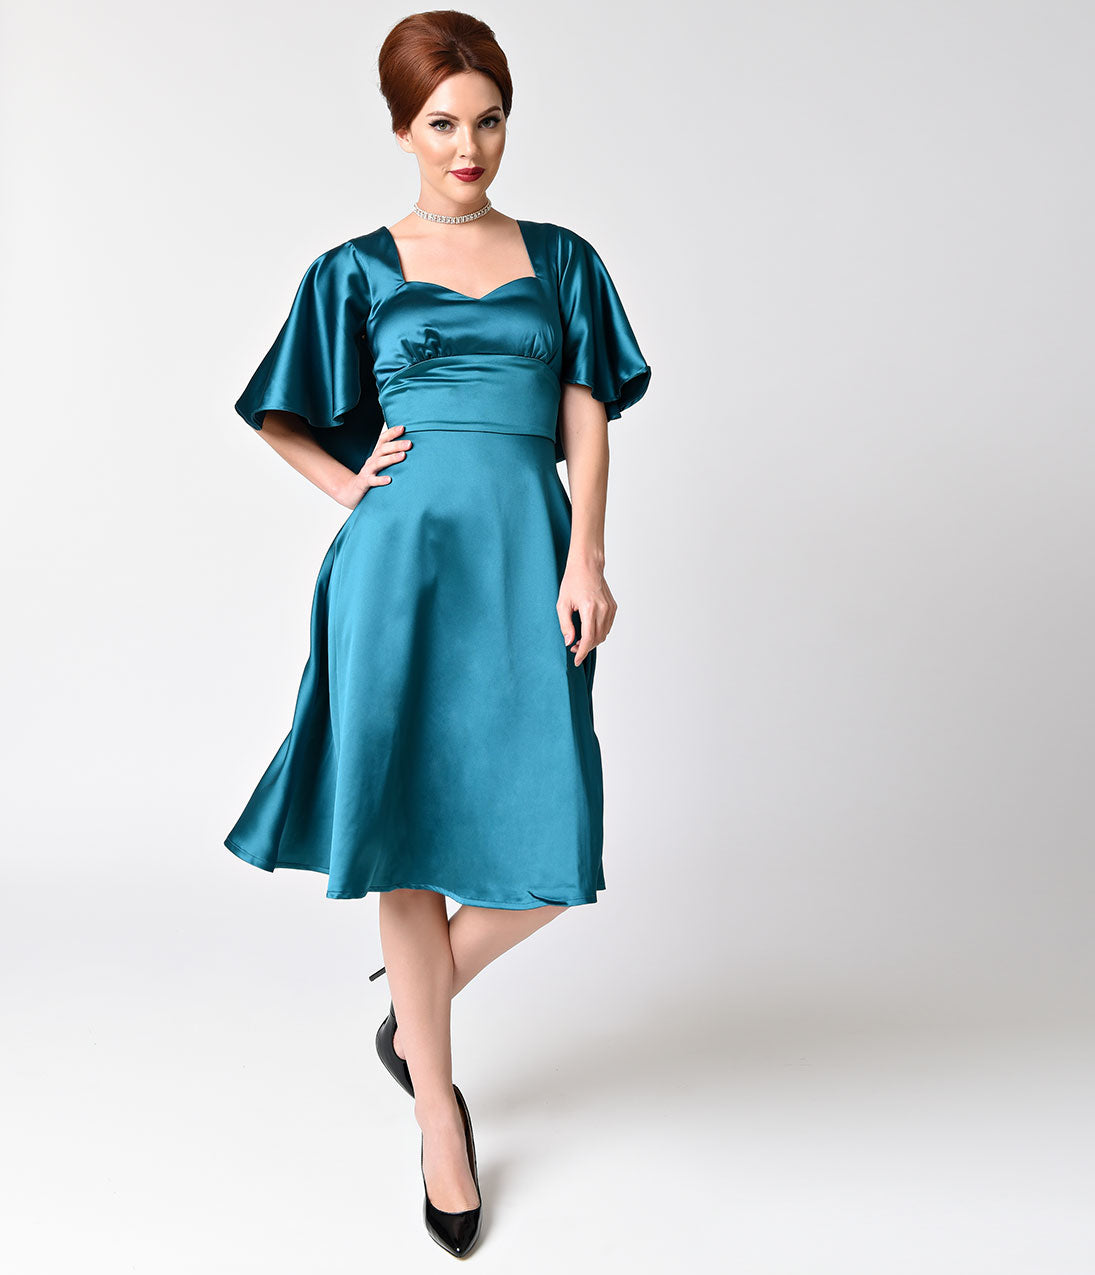 1940s Evening, Prom, Party, Cocktail Dresses & Ball Gowns Voodoo Vixen Retro Style Blue Satin Capelet Sleeves Harper Swing Dress $69.00 AT vintagedancer.com